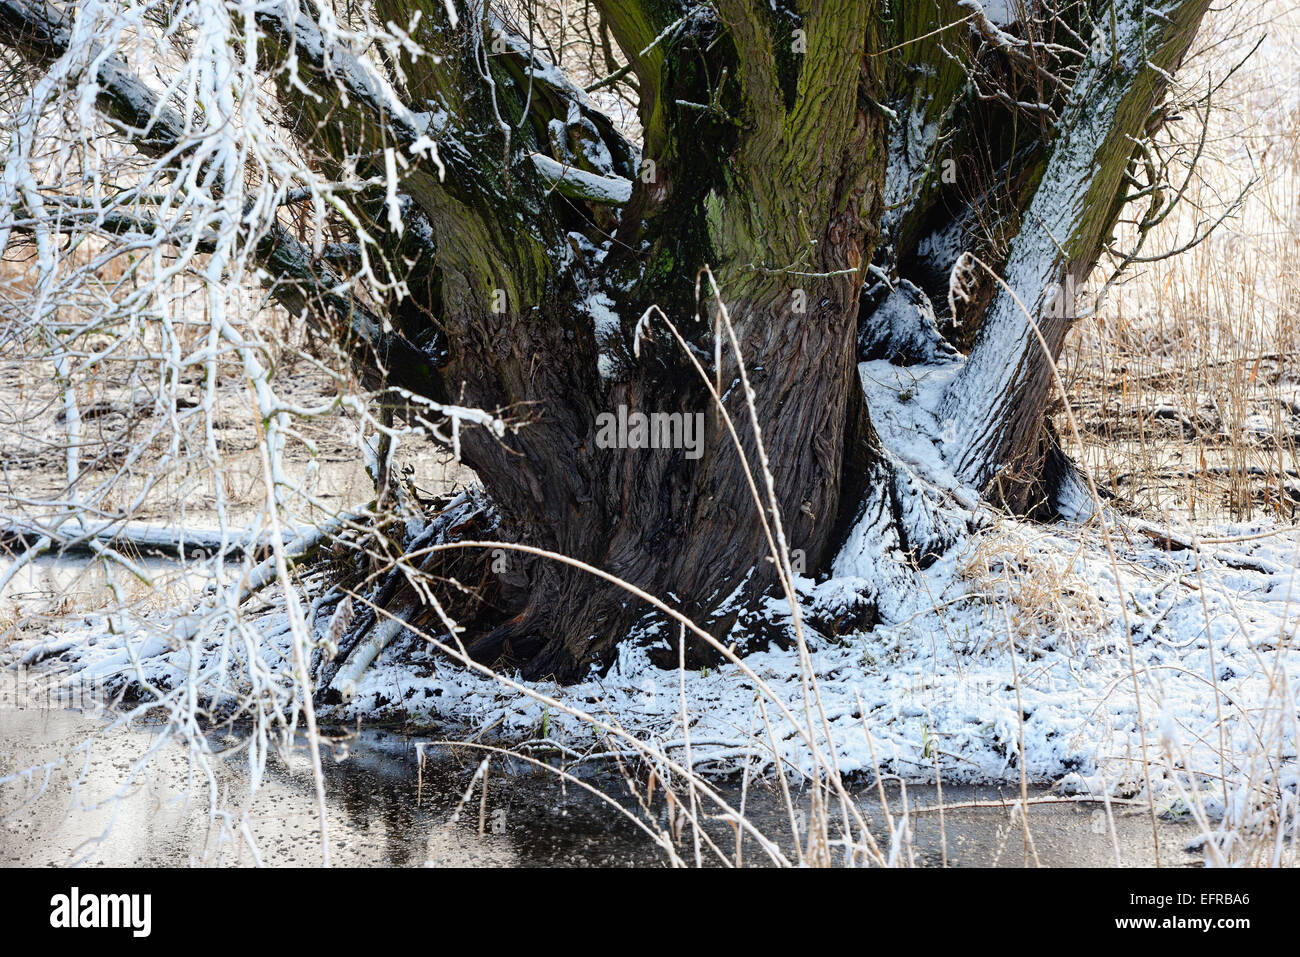 hight resolution of beaver lodge in a willow tree at winter time germany havel river